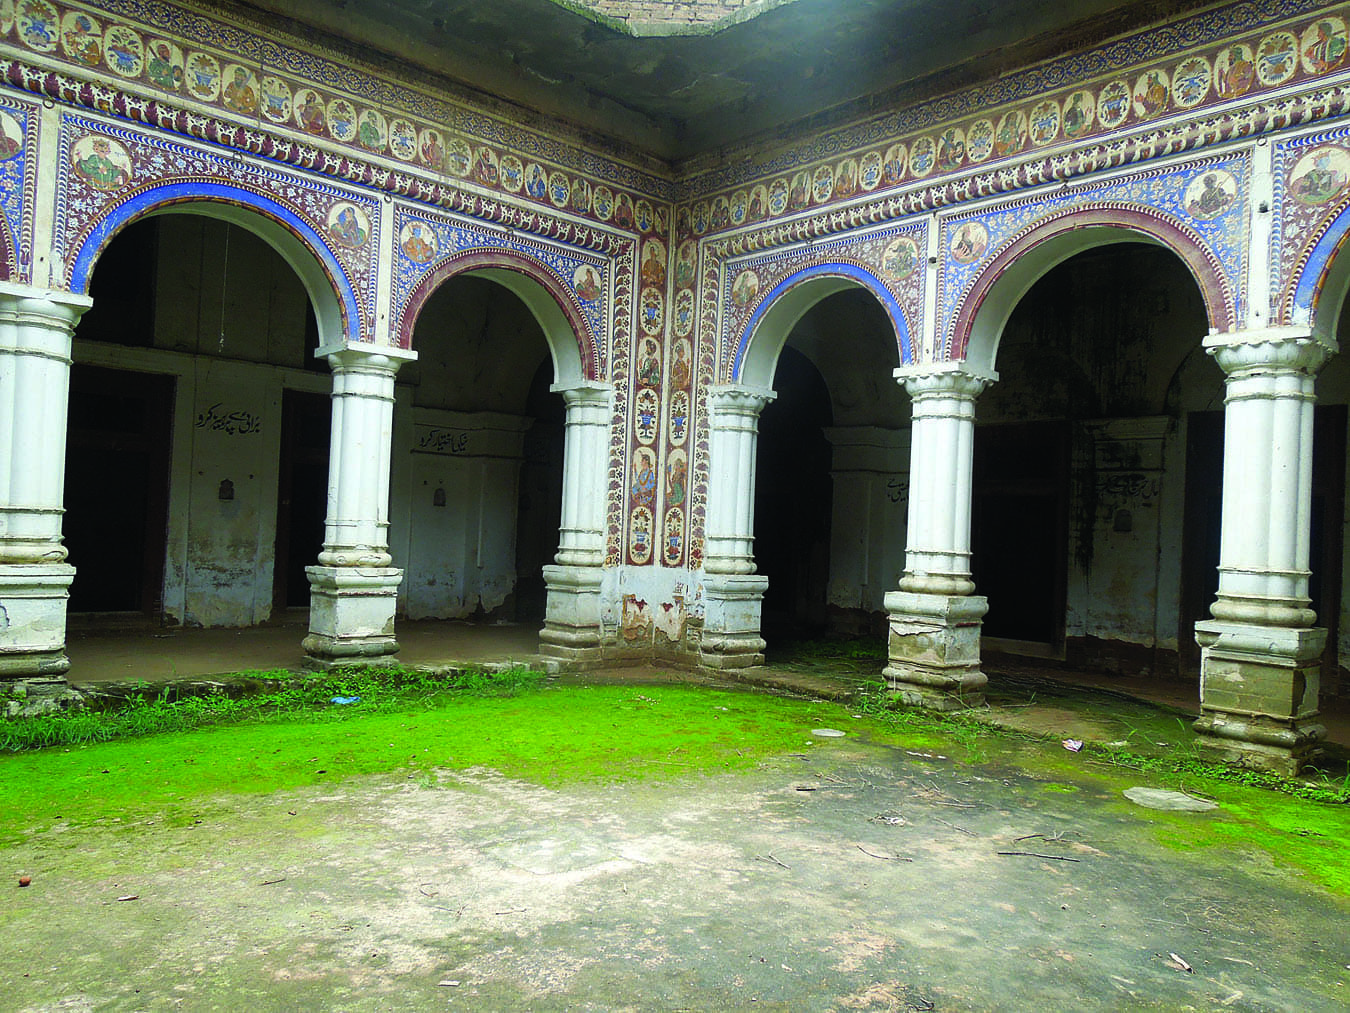 The central courtyard with beautifully adorned pillars.